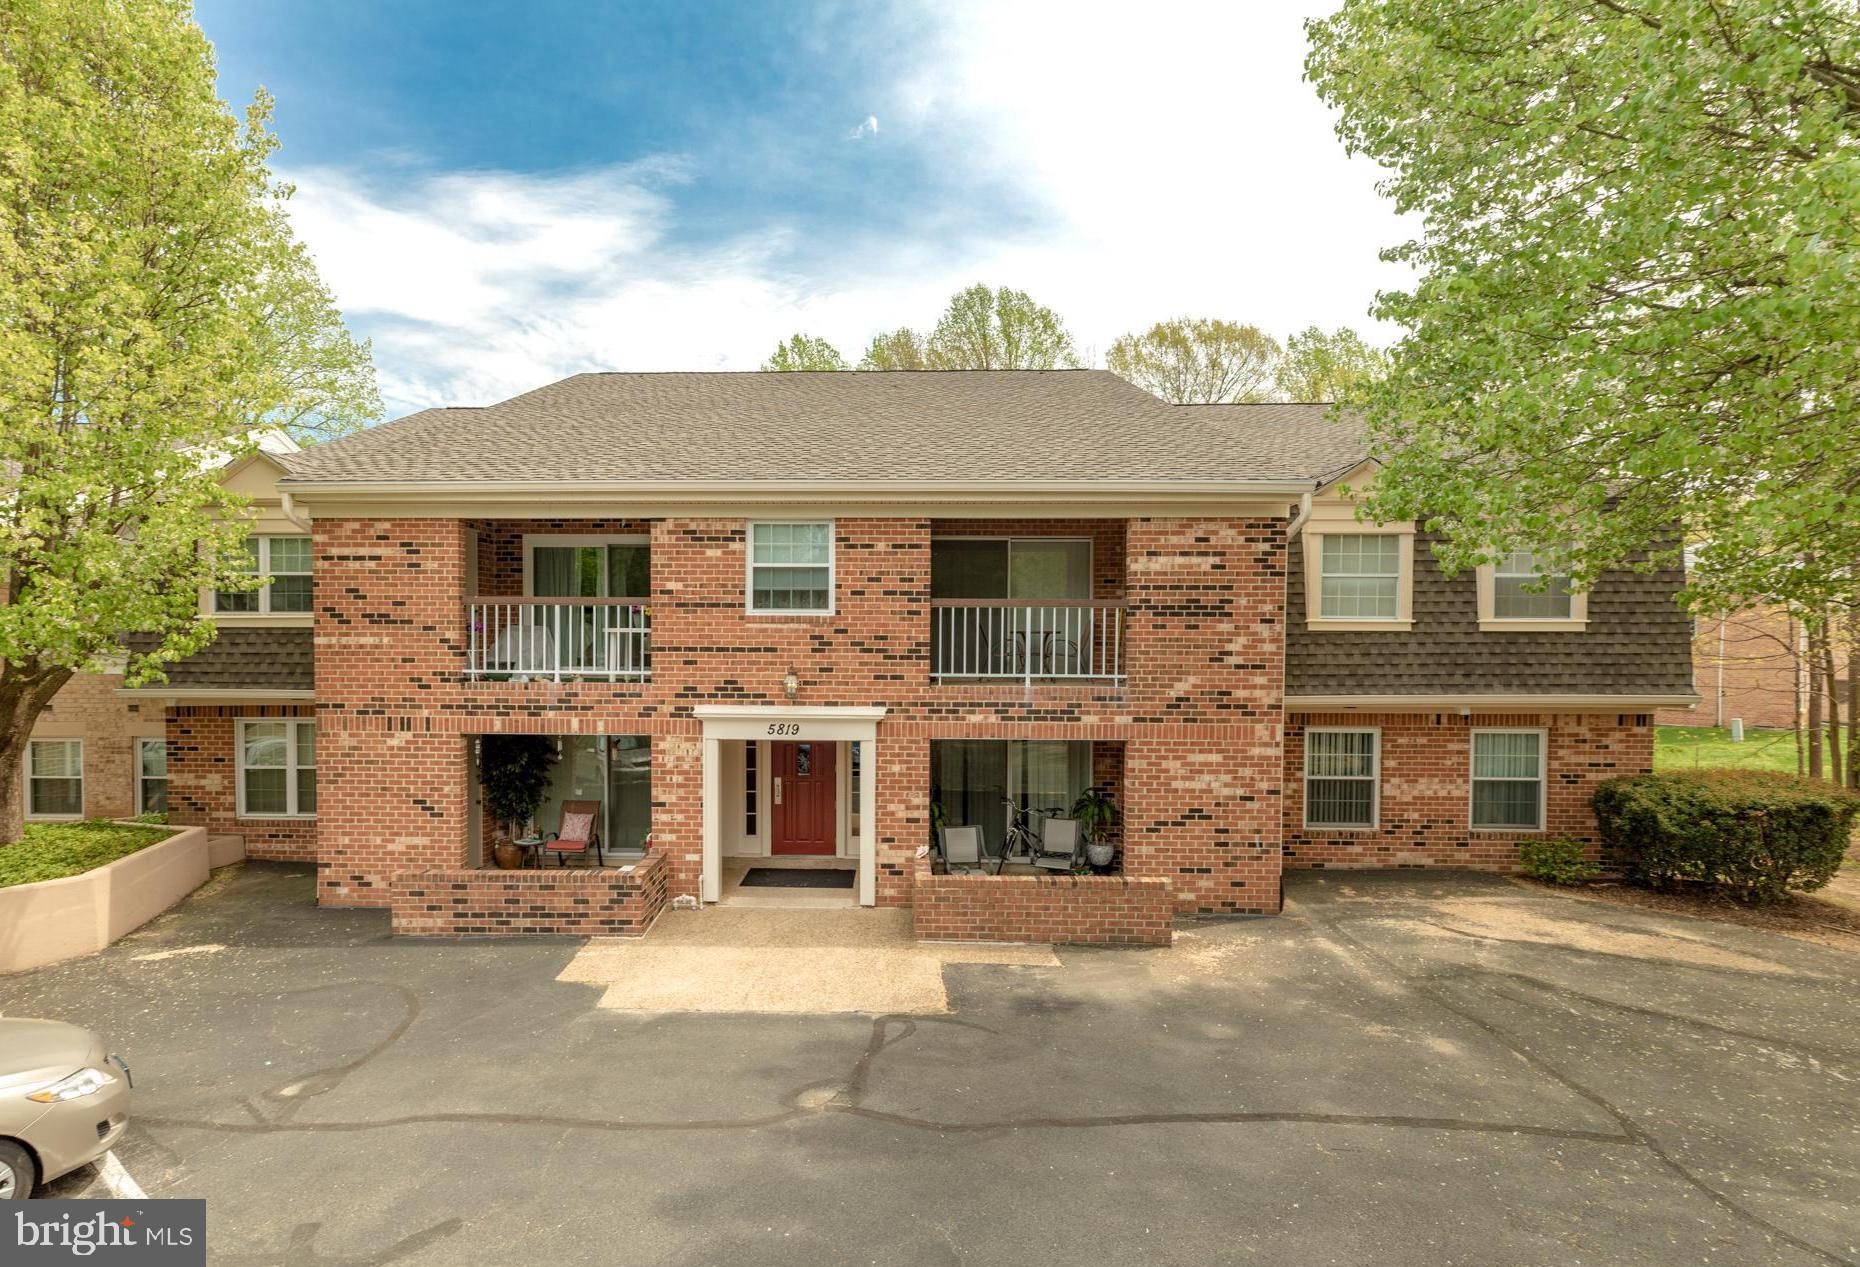 Model perfect condo on ground level with walk out from patio to common area, tot lot and walking path. Features include beautifully remodeled eat-in kitchen w/ stainless appliances, granite counters, gas cooking & new cabinets & lights, full size newer washer & dryer, windows & sliders replaced, elegant crown moldings, wood type flooring in all rooms, spacious master suite w/ walk-in closet + 3 additional closets, private patio, newer HVAC, full sized finished 15 X 6 storage room off the kitchen could be a library or exercise room & more. Plenty of visitor parking. Community pool, tennis, tot lots & walking trails.